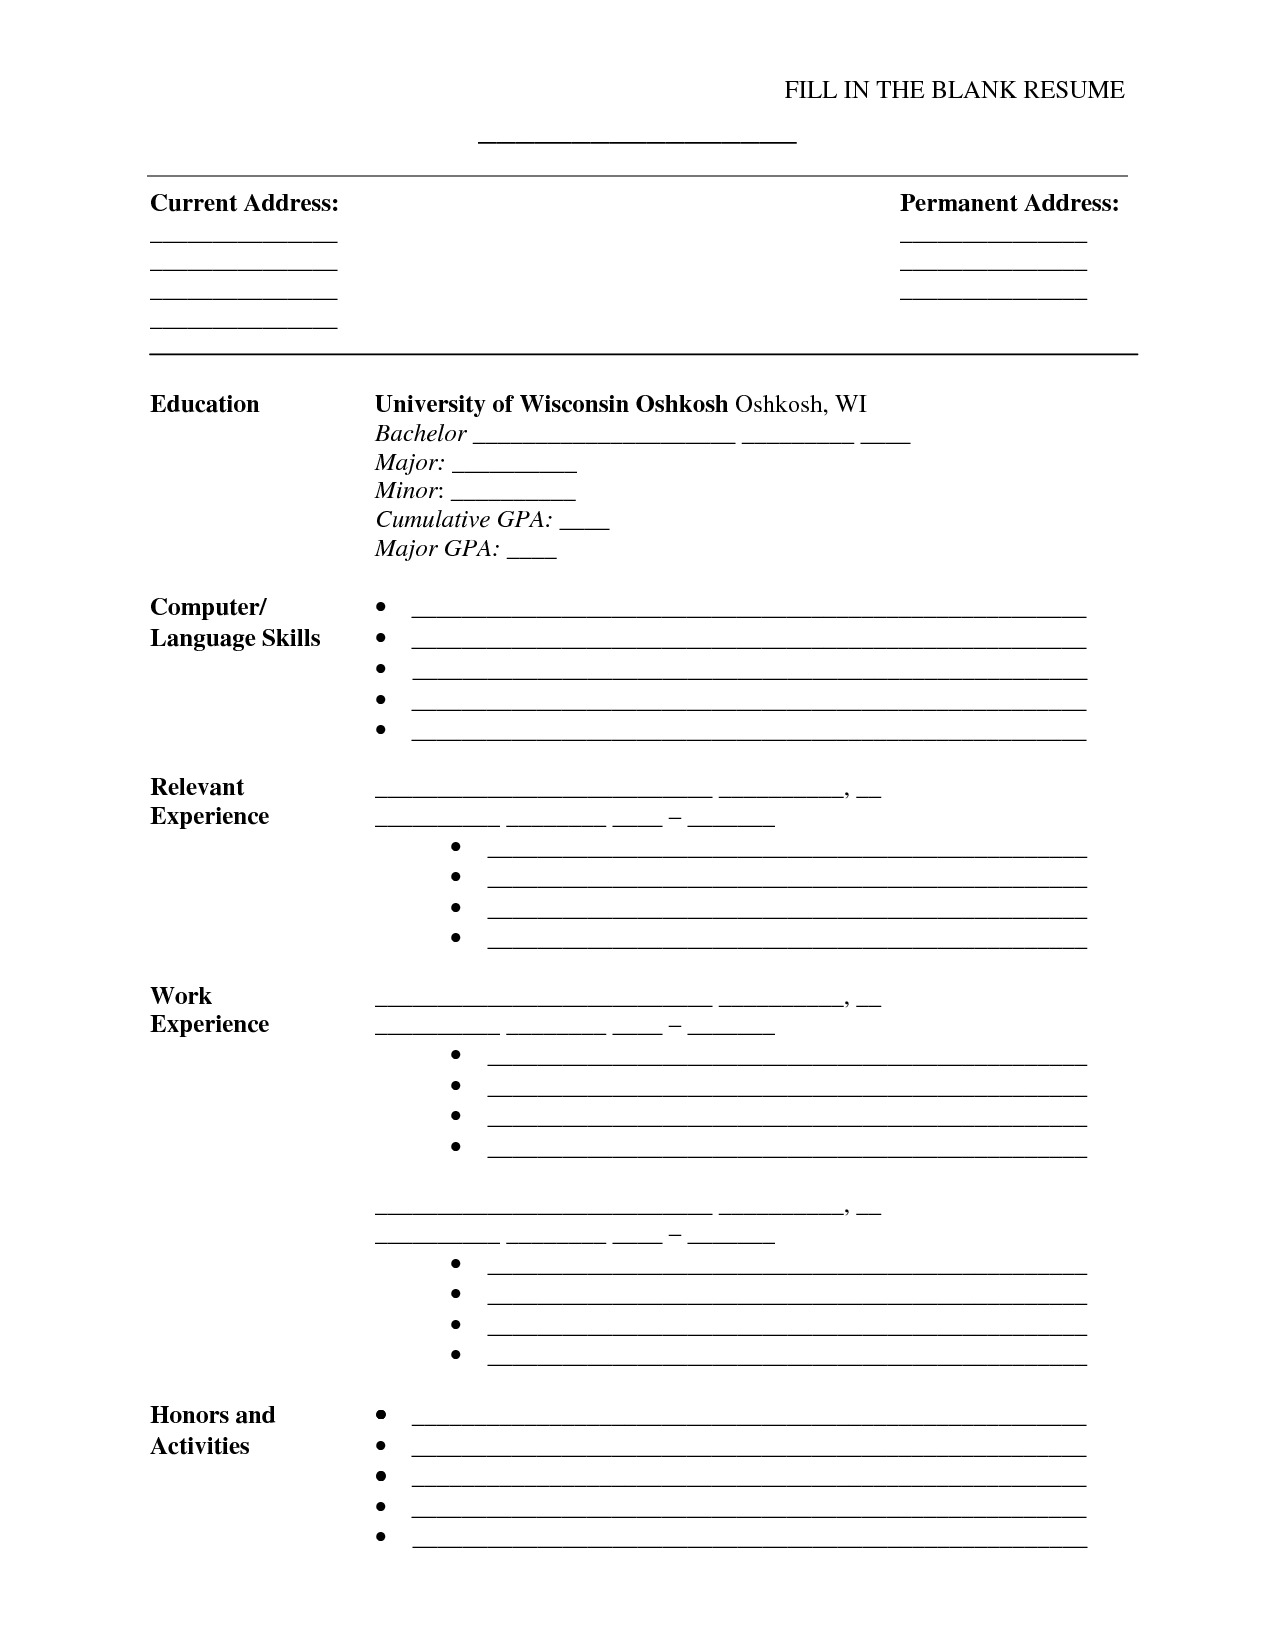 Blank Resume Template Pdf Fill In The Blank Resume Pdf  Httpwwwresumecareerfill